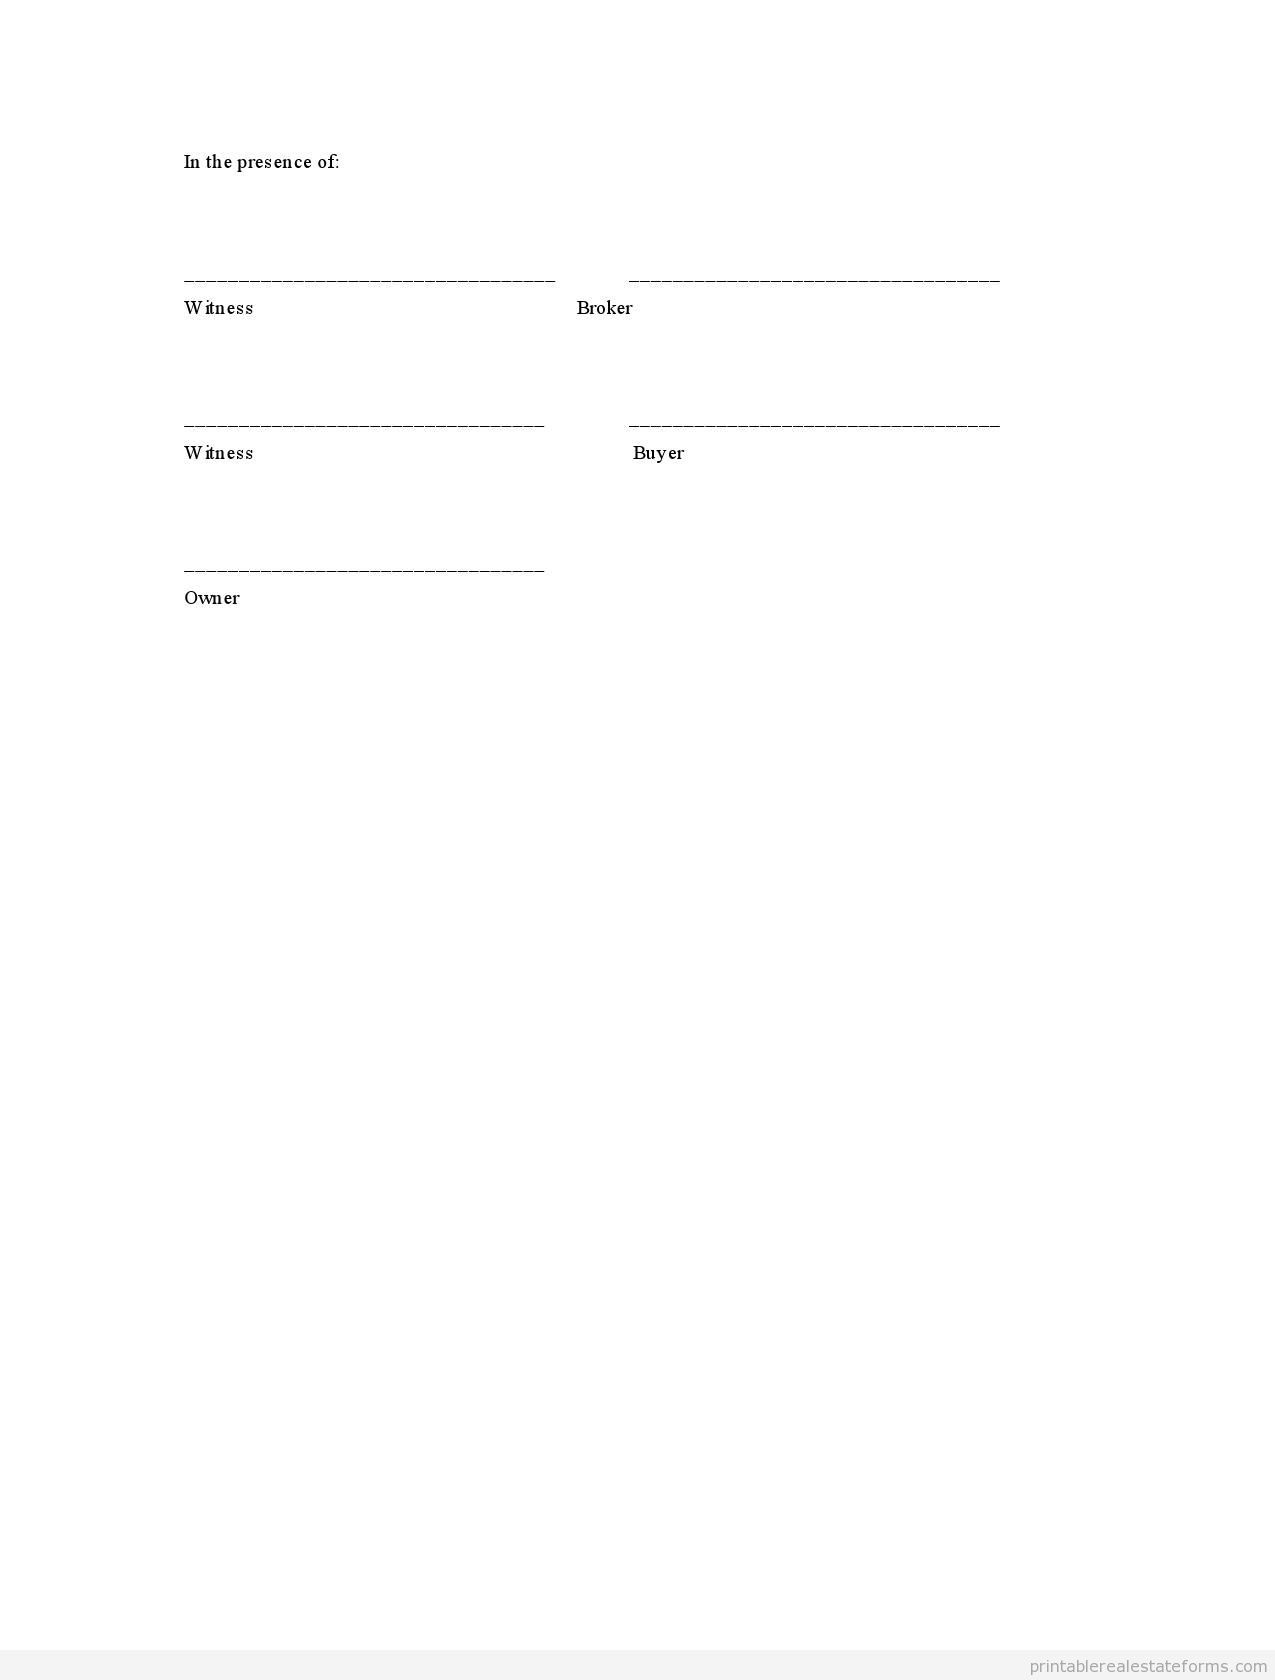 Sample Printable Offer To Purchase Real Estate Form  Sample Real